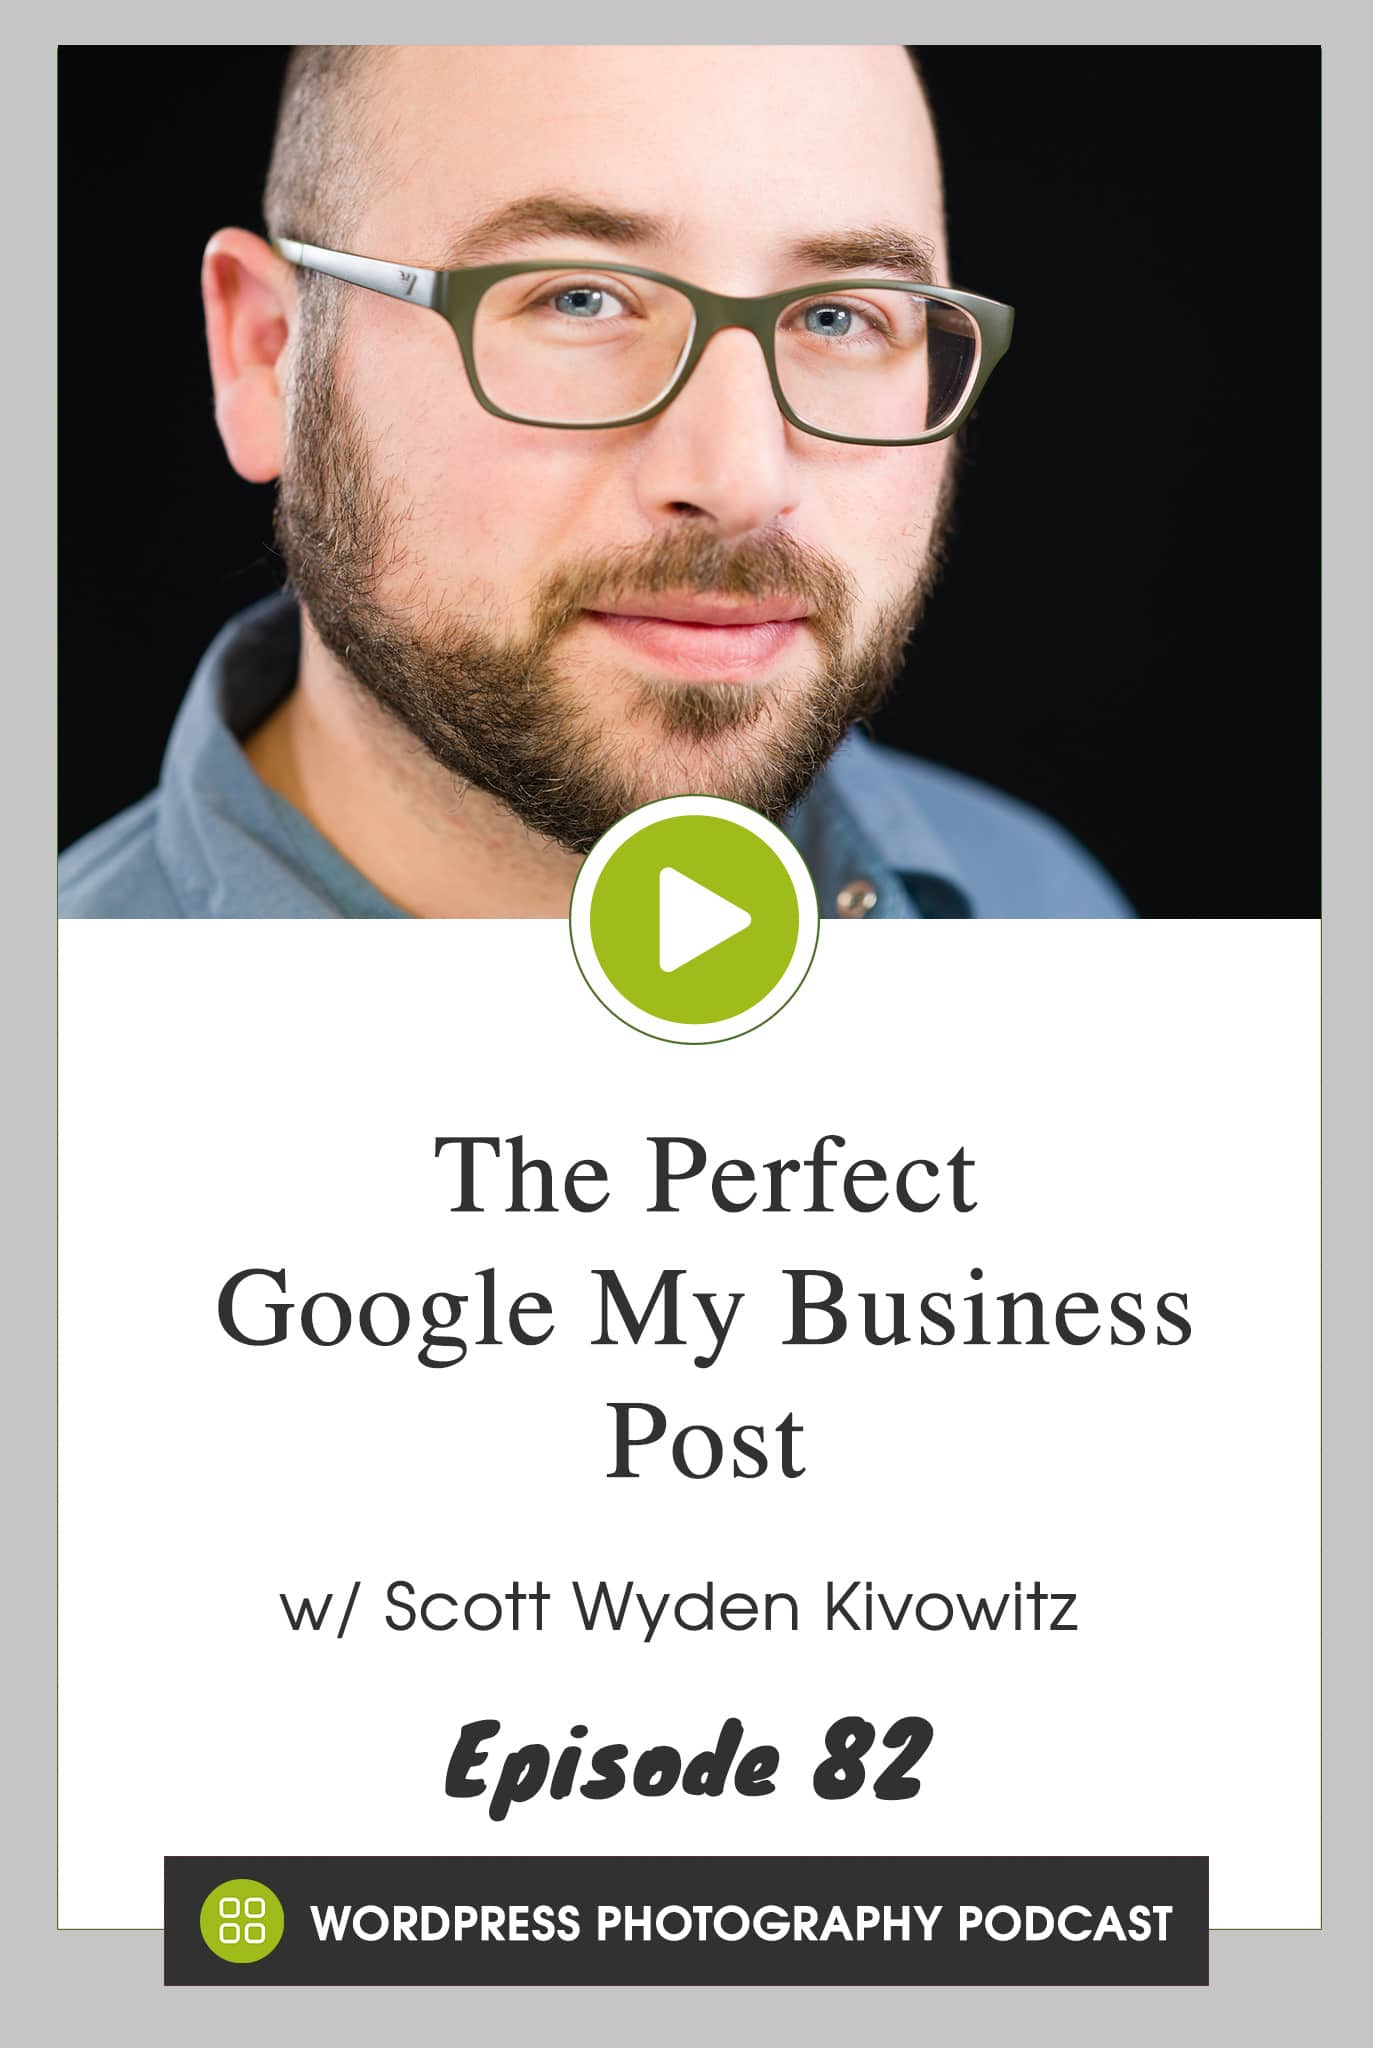 Episode 82 – The Perfect Google My Business Post